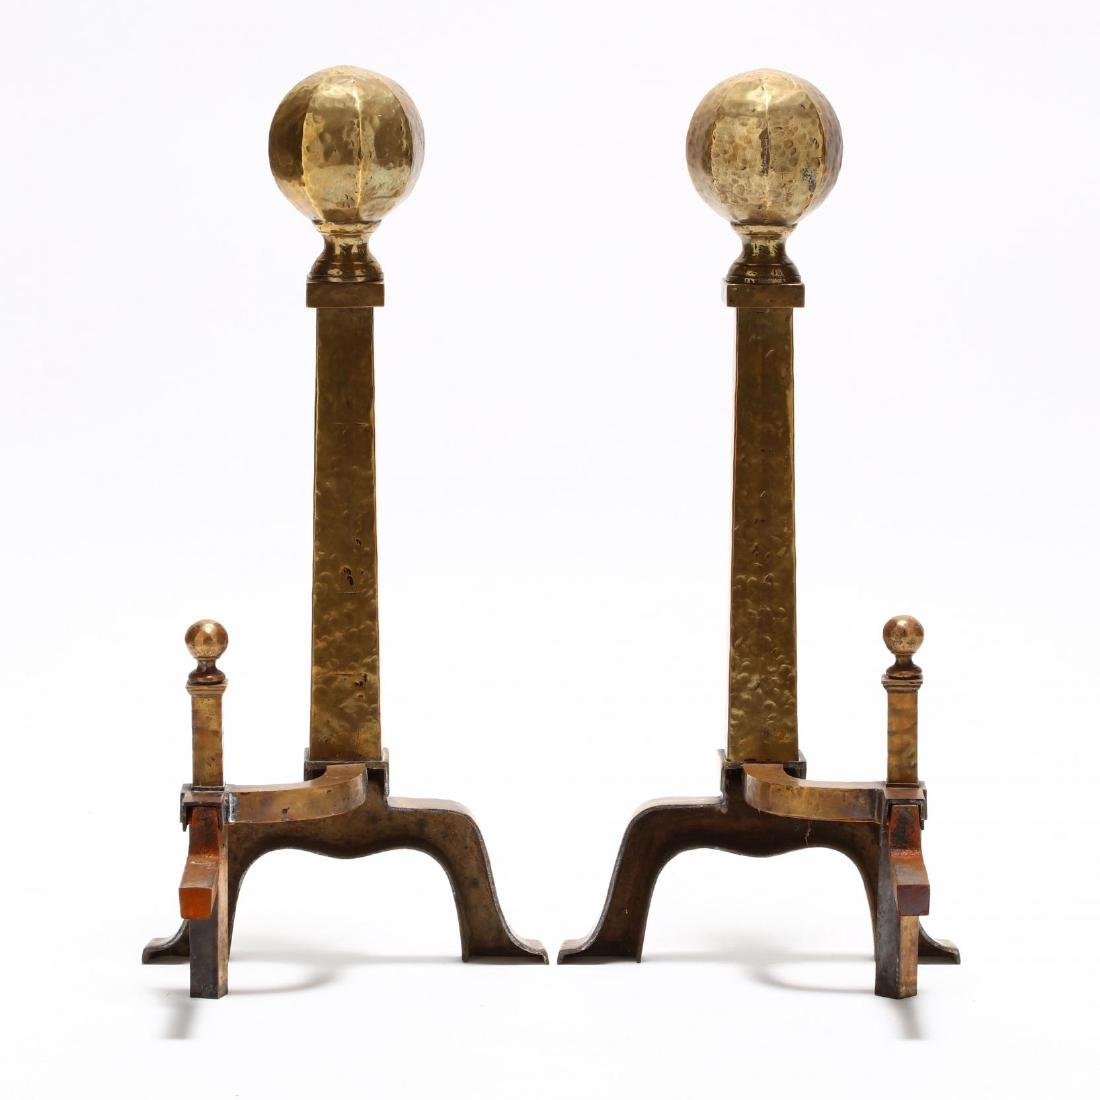 Pair of Arts and Crafts Style Andirons - 2